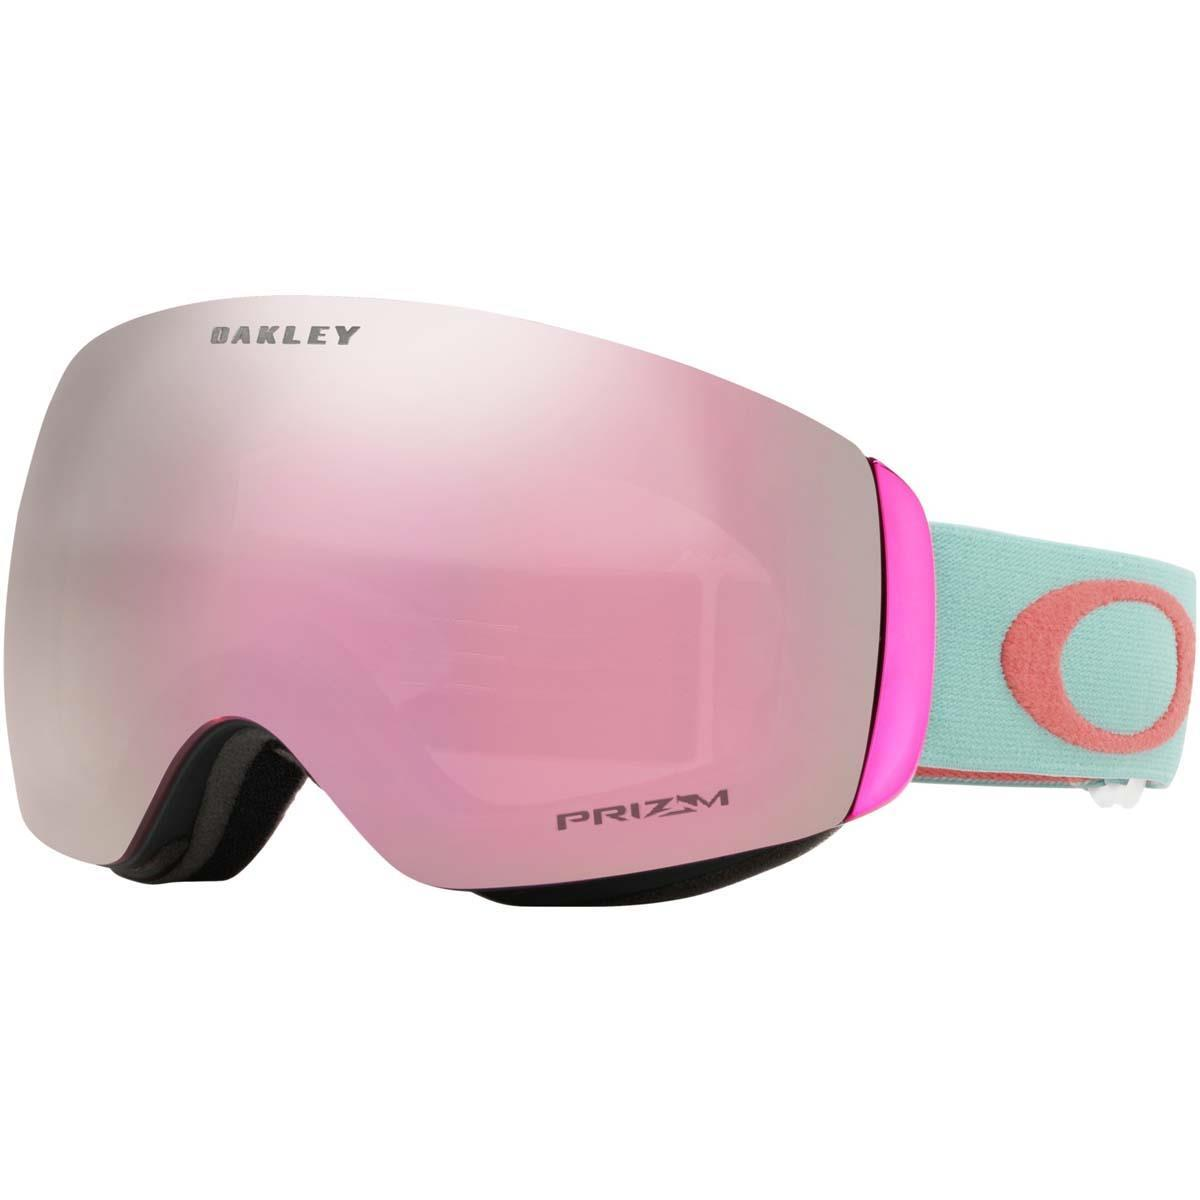 8daa5c723e Oakley Prizm Flight Deck XM Snow Goggles - OO7064